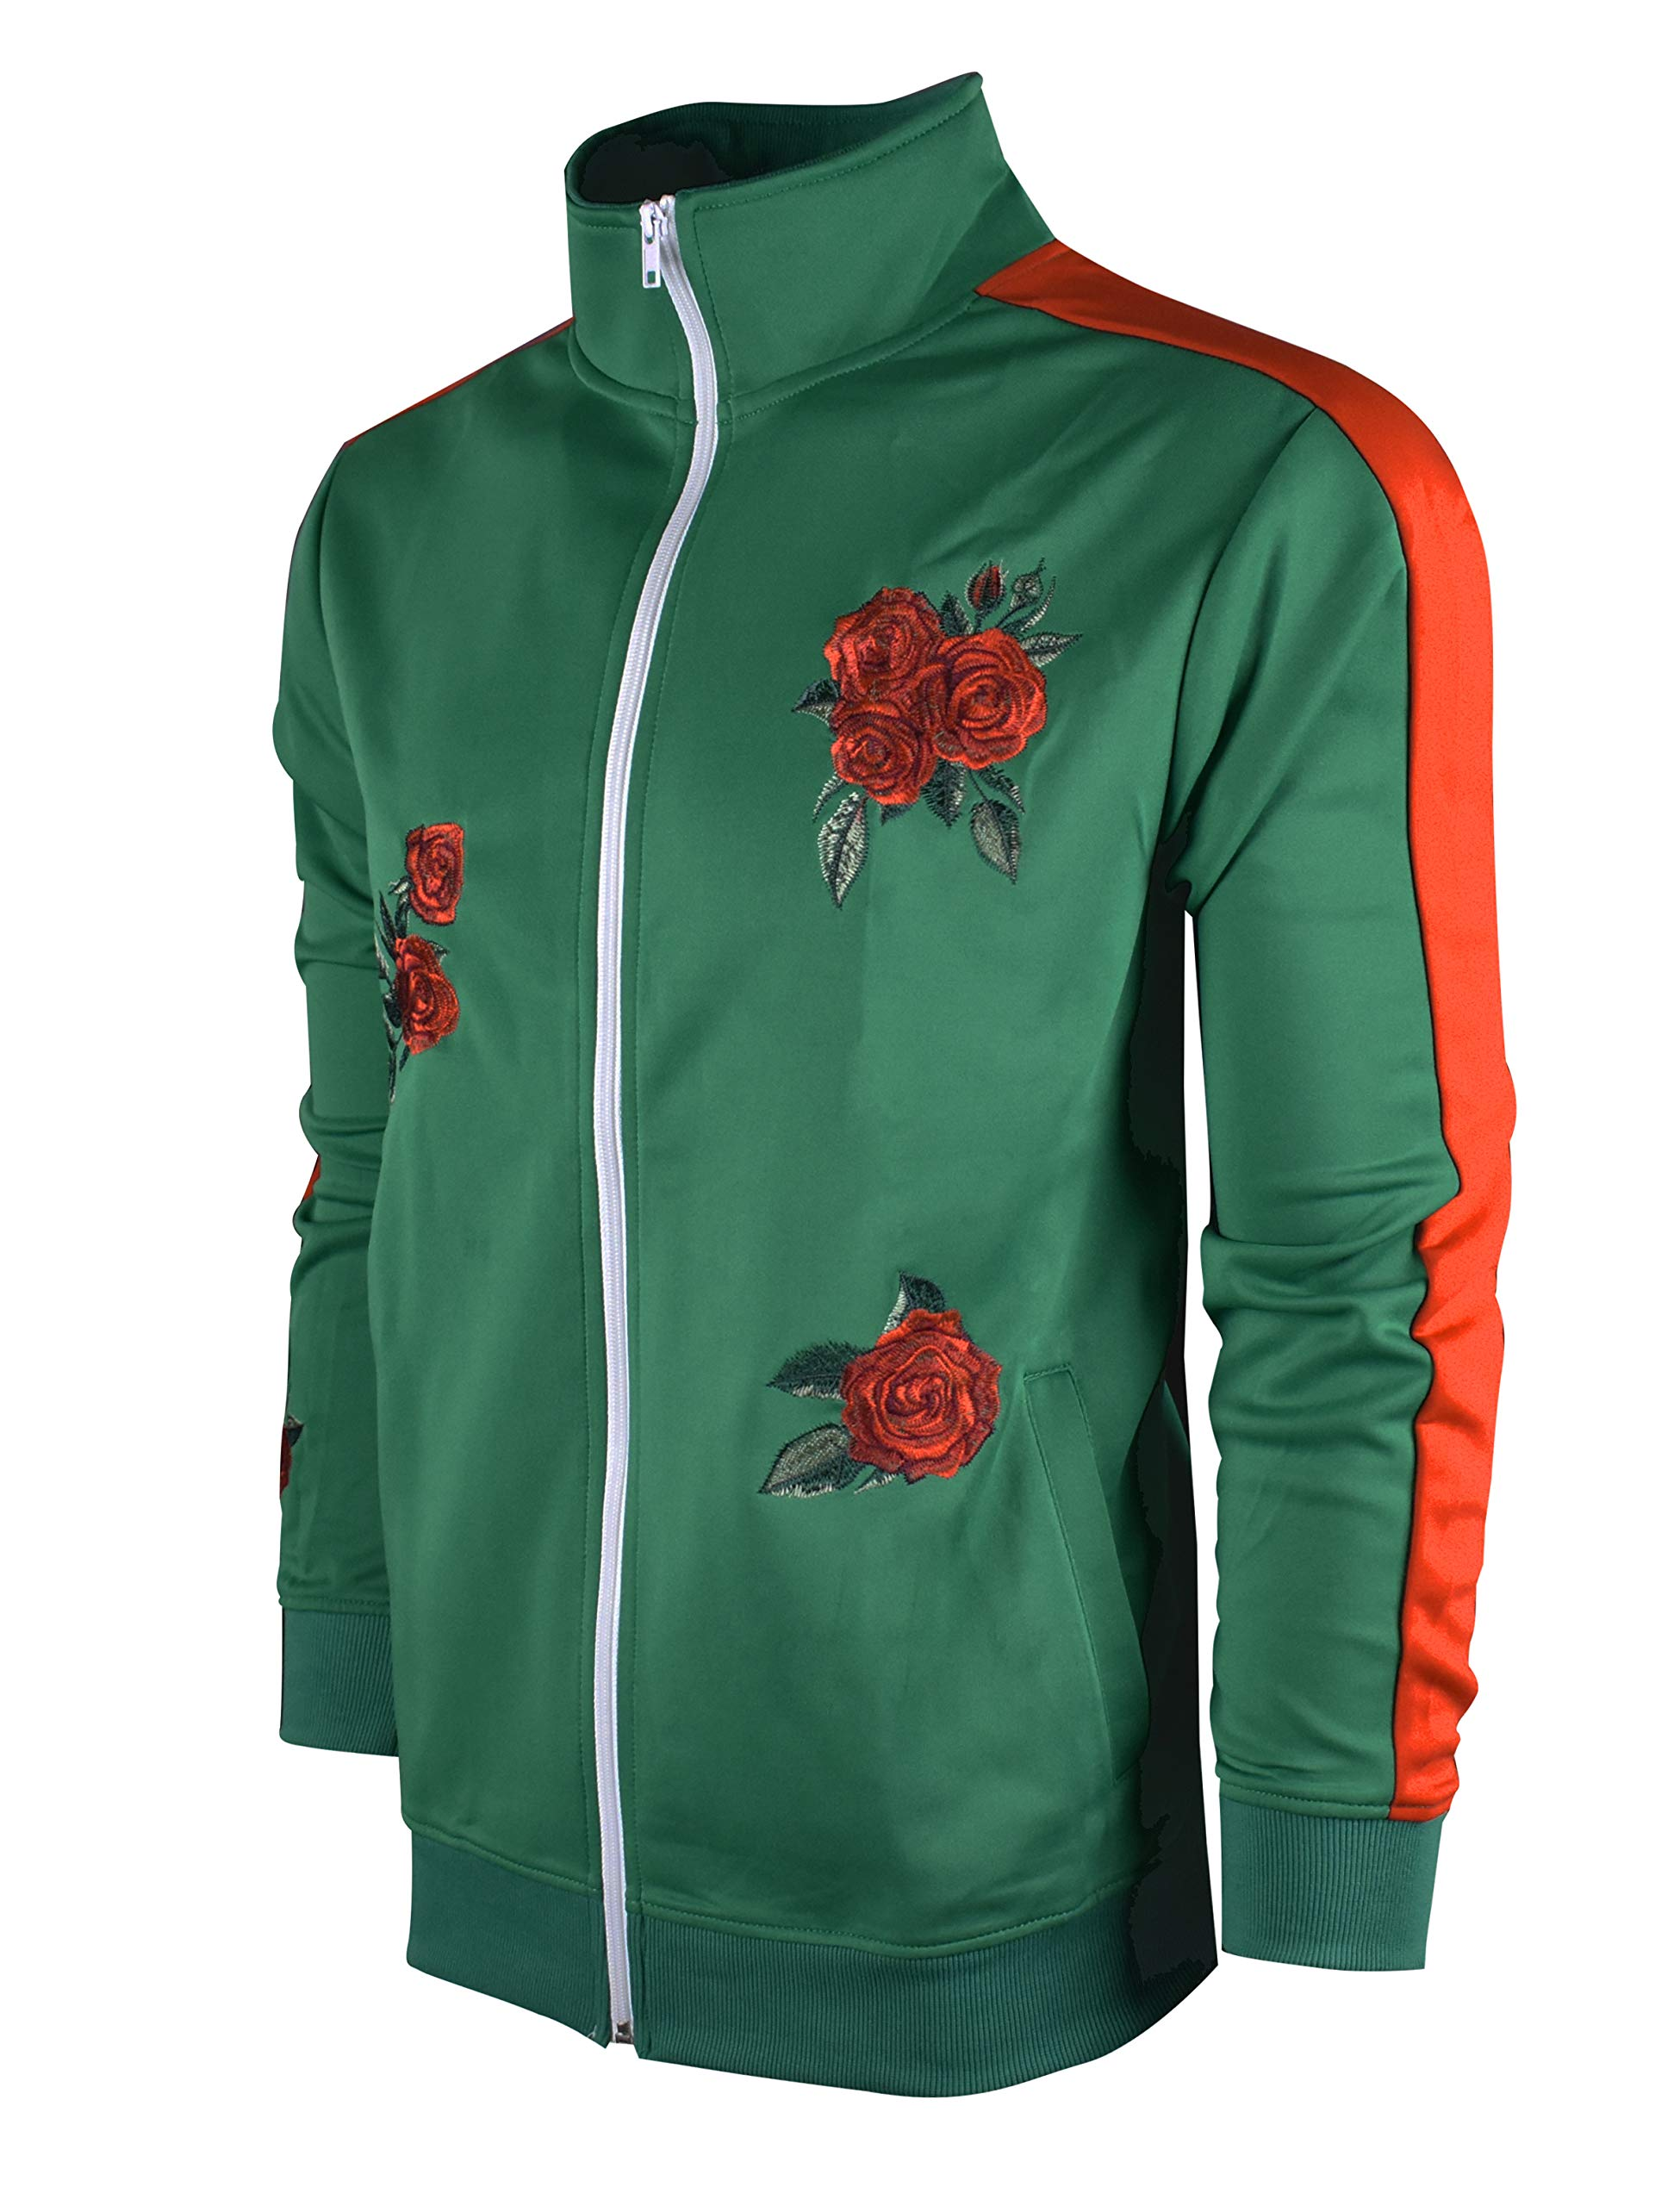 SCREENSHOTBRAND-F11853 Mens Urban Hip Hop Premium Track Jacket - Slim Fit Side Taping Rose Embroidery Fashion Top-Green-Small by SCREENSHOT